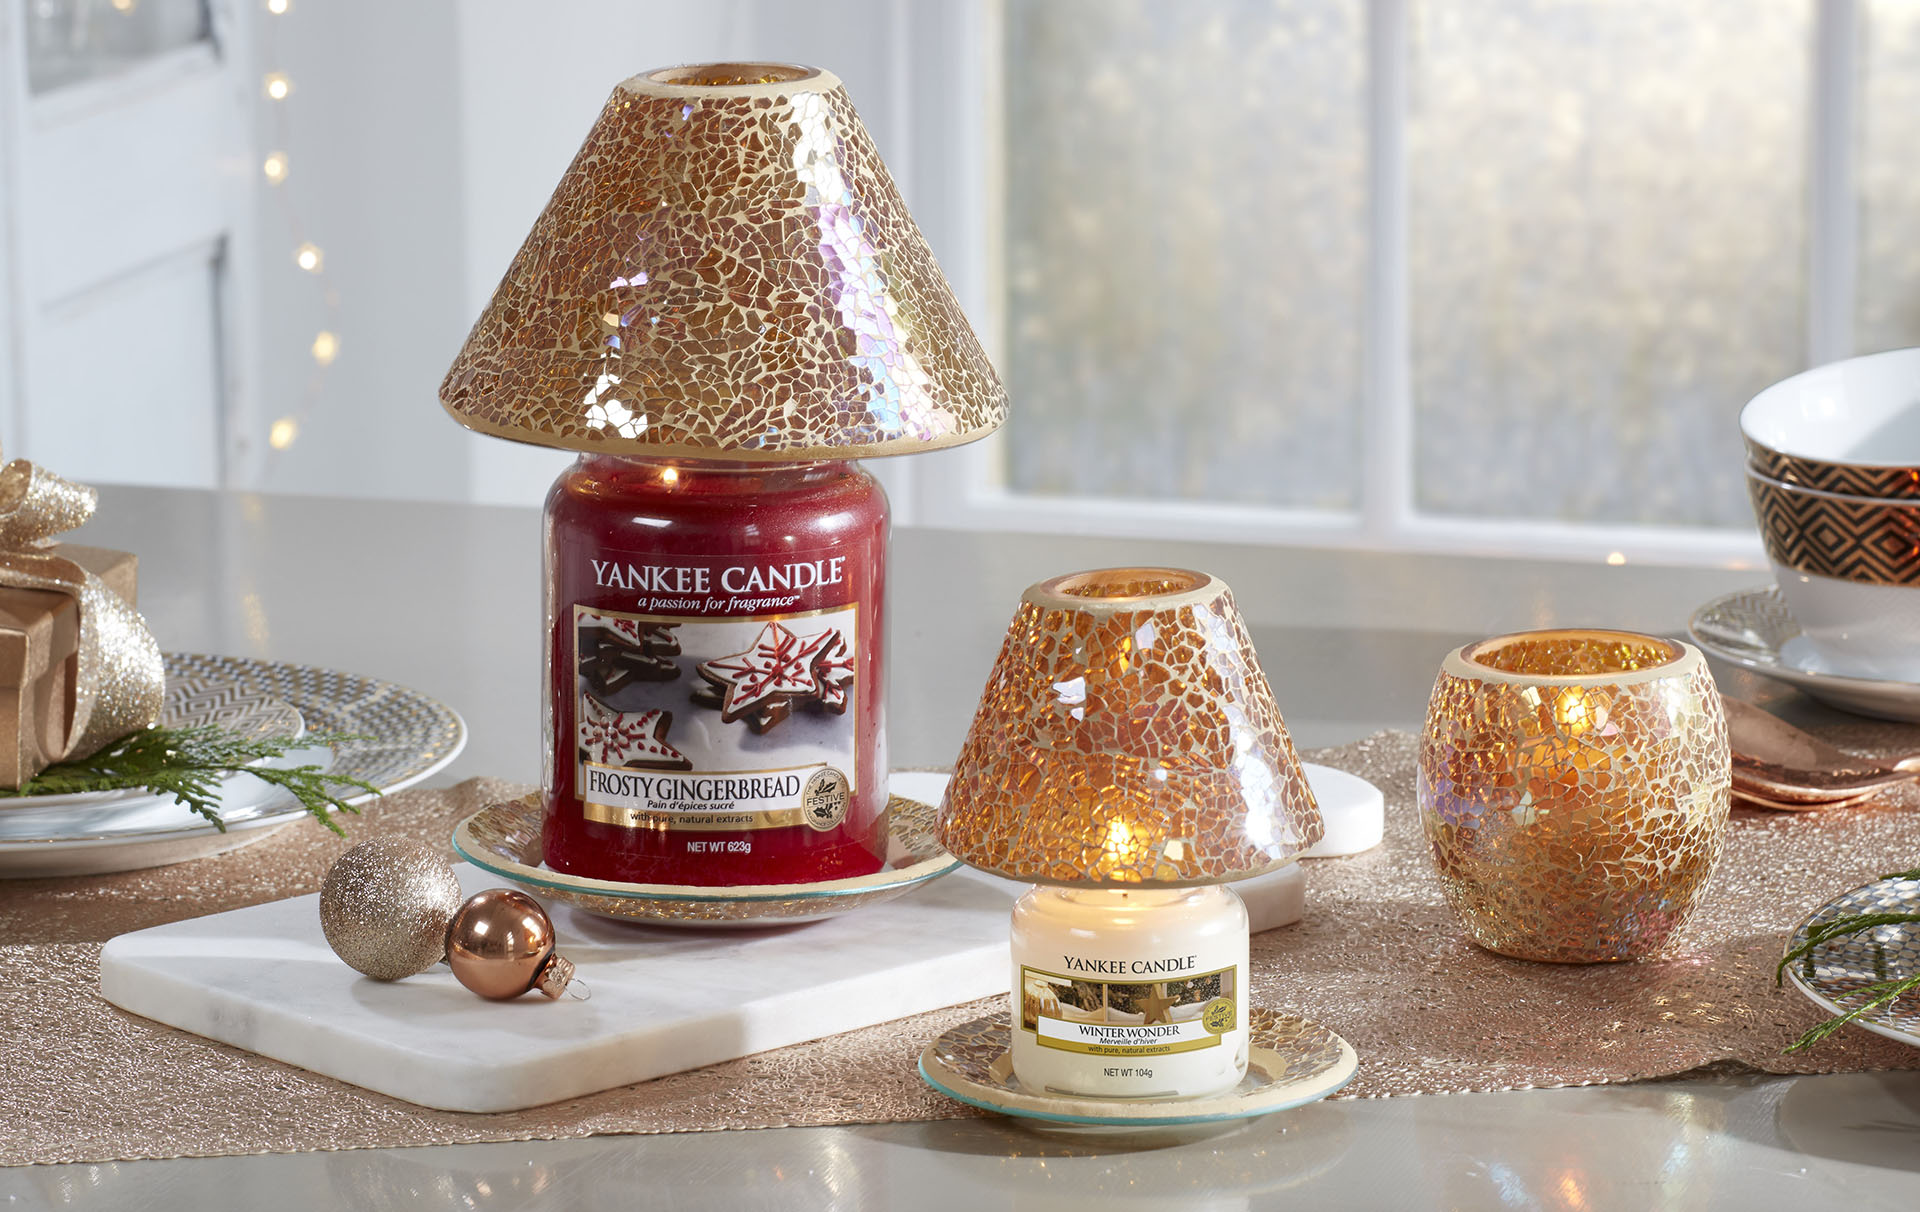 Yankee Candle has dropped their highly-anticipated Christmas collection